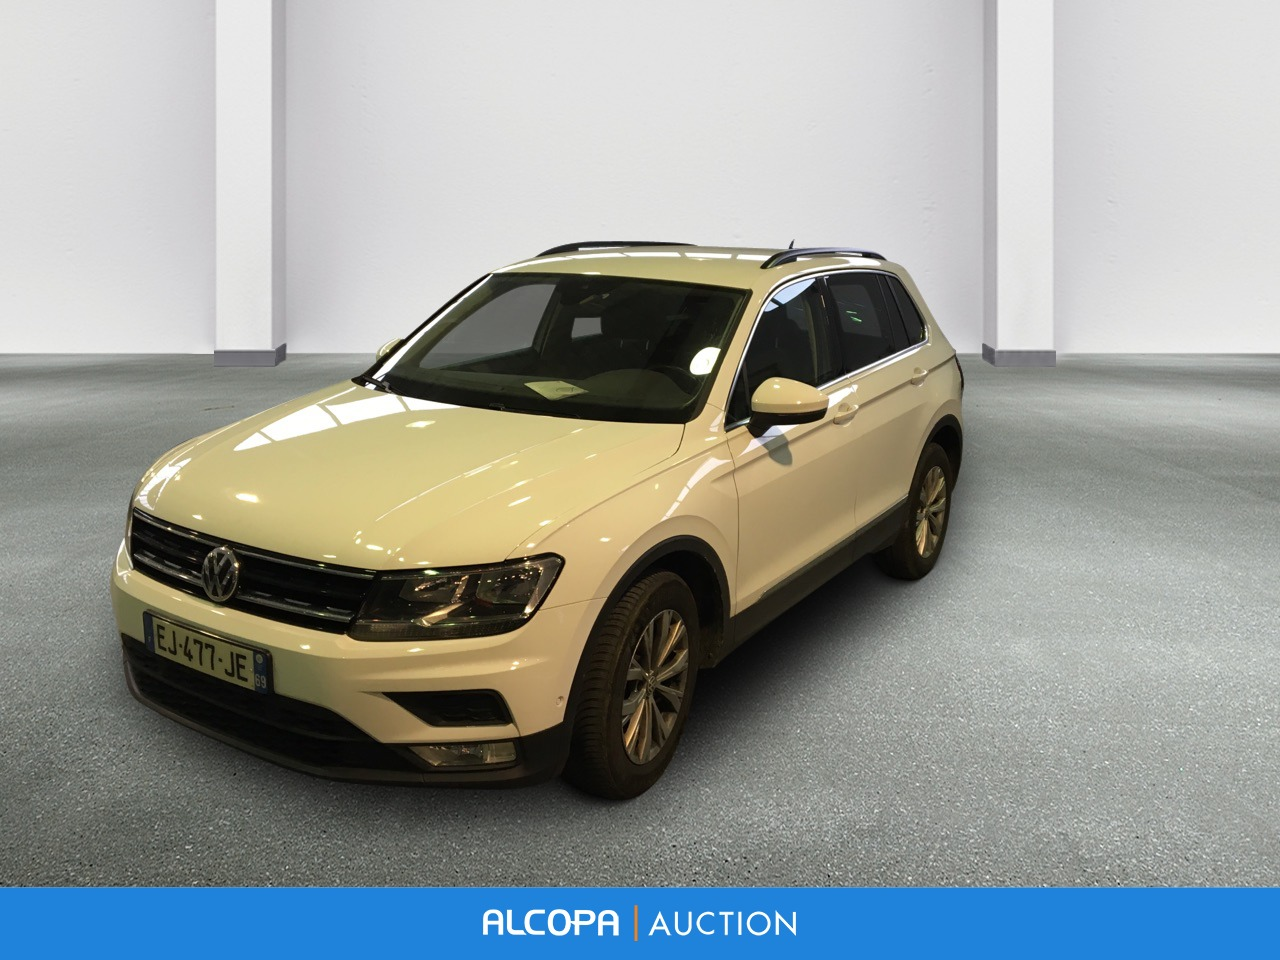 volkswagen tiguan business tiguan 2 0 tdi 150 dsg7 confortline business lyon alcopa auction. Black Bedroom Furniture Sets. Home Design Ideas